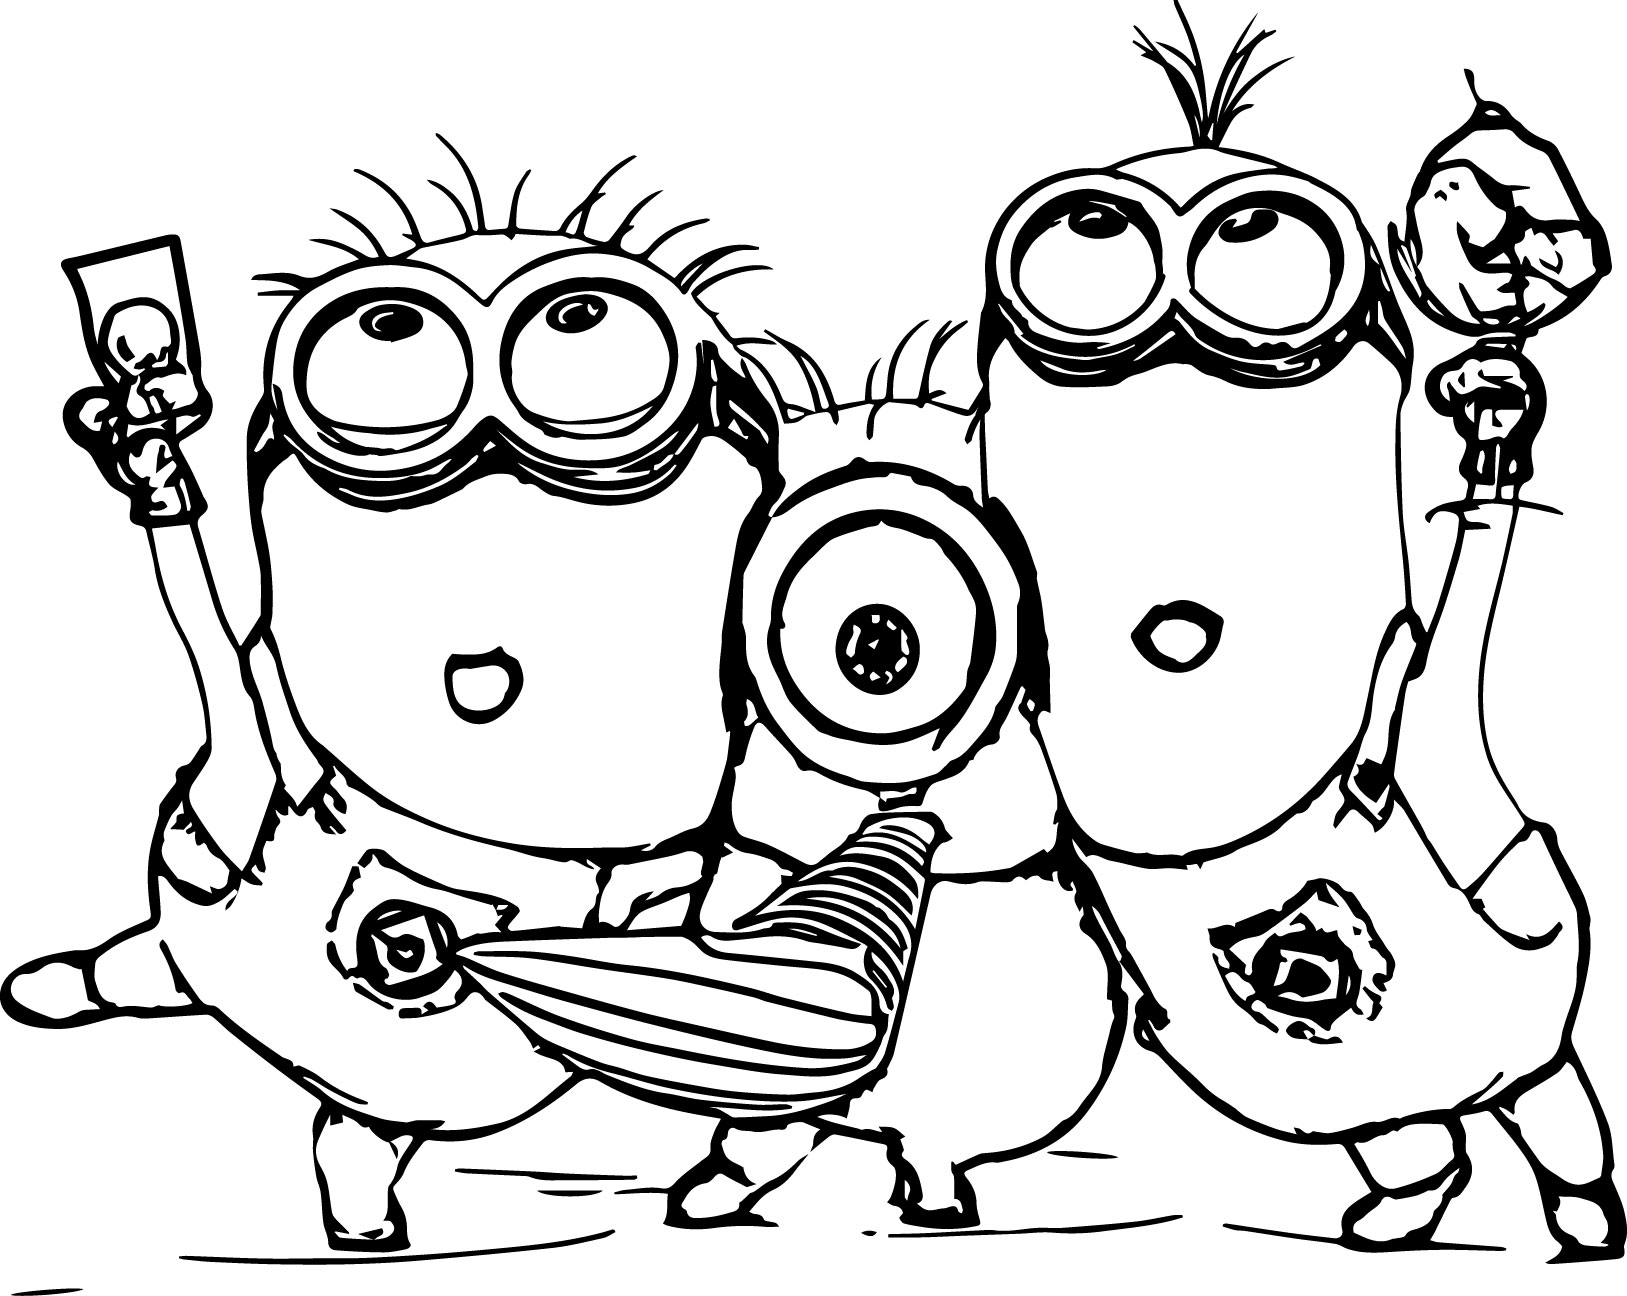 free coloring pages minions minion coloring pages best coloring pages for kids coloring pages minions free